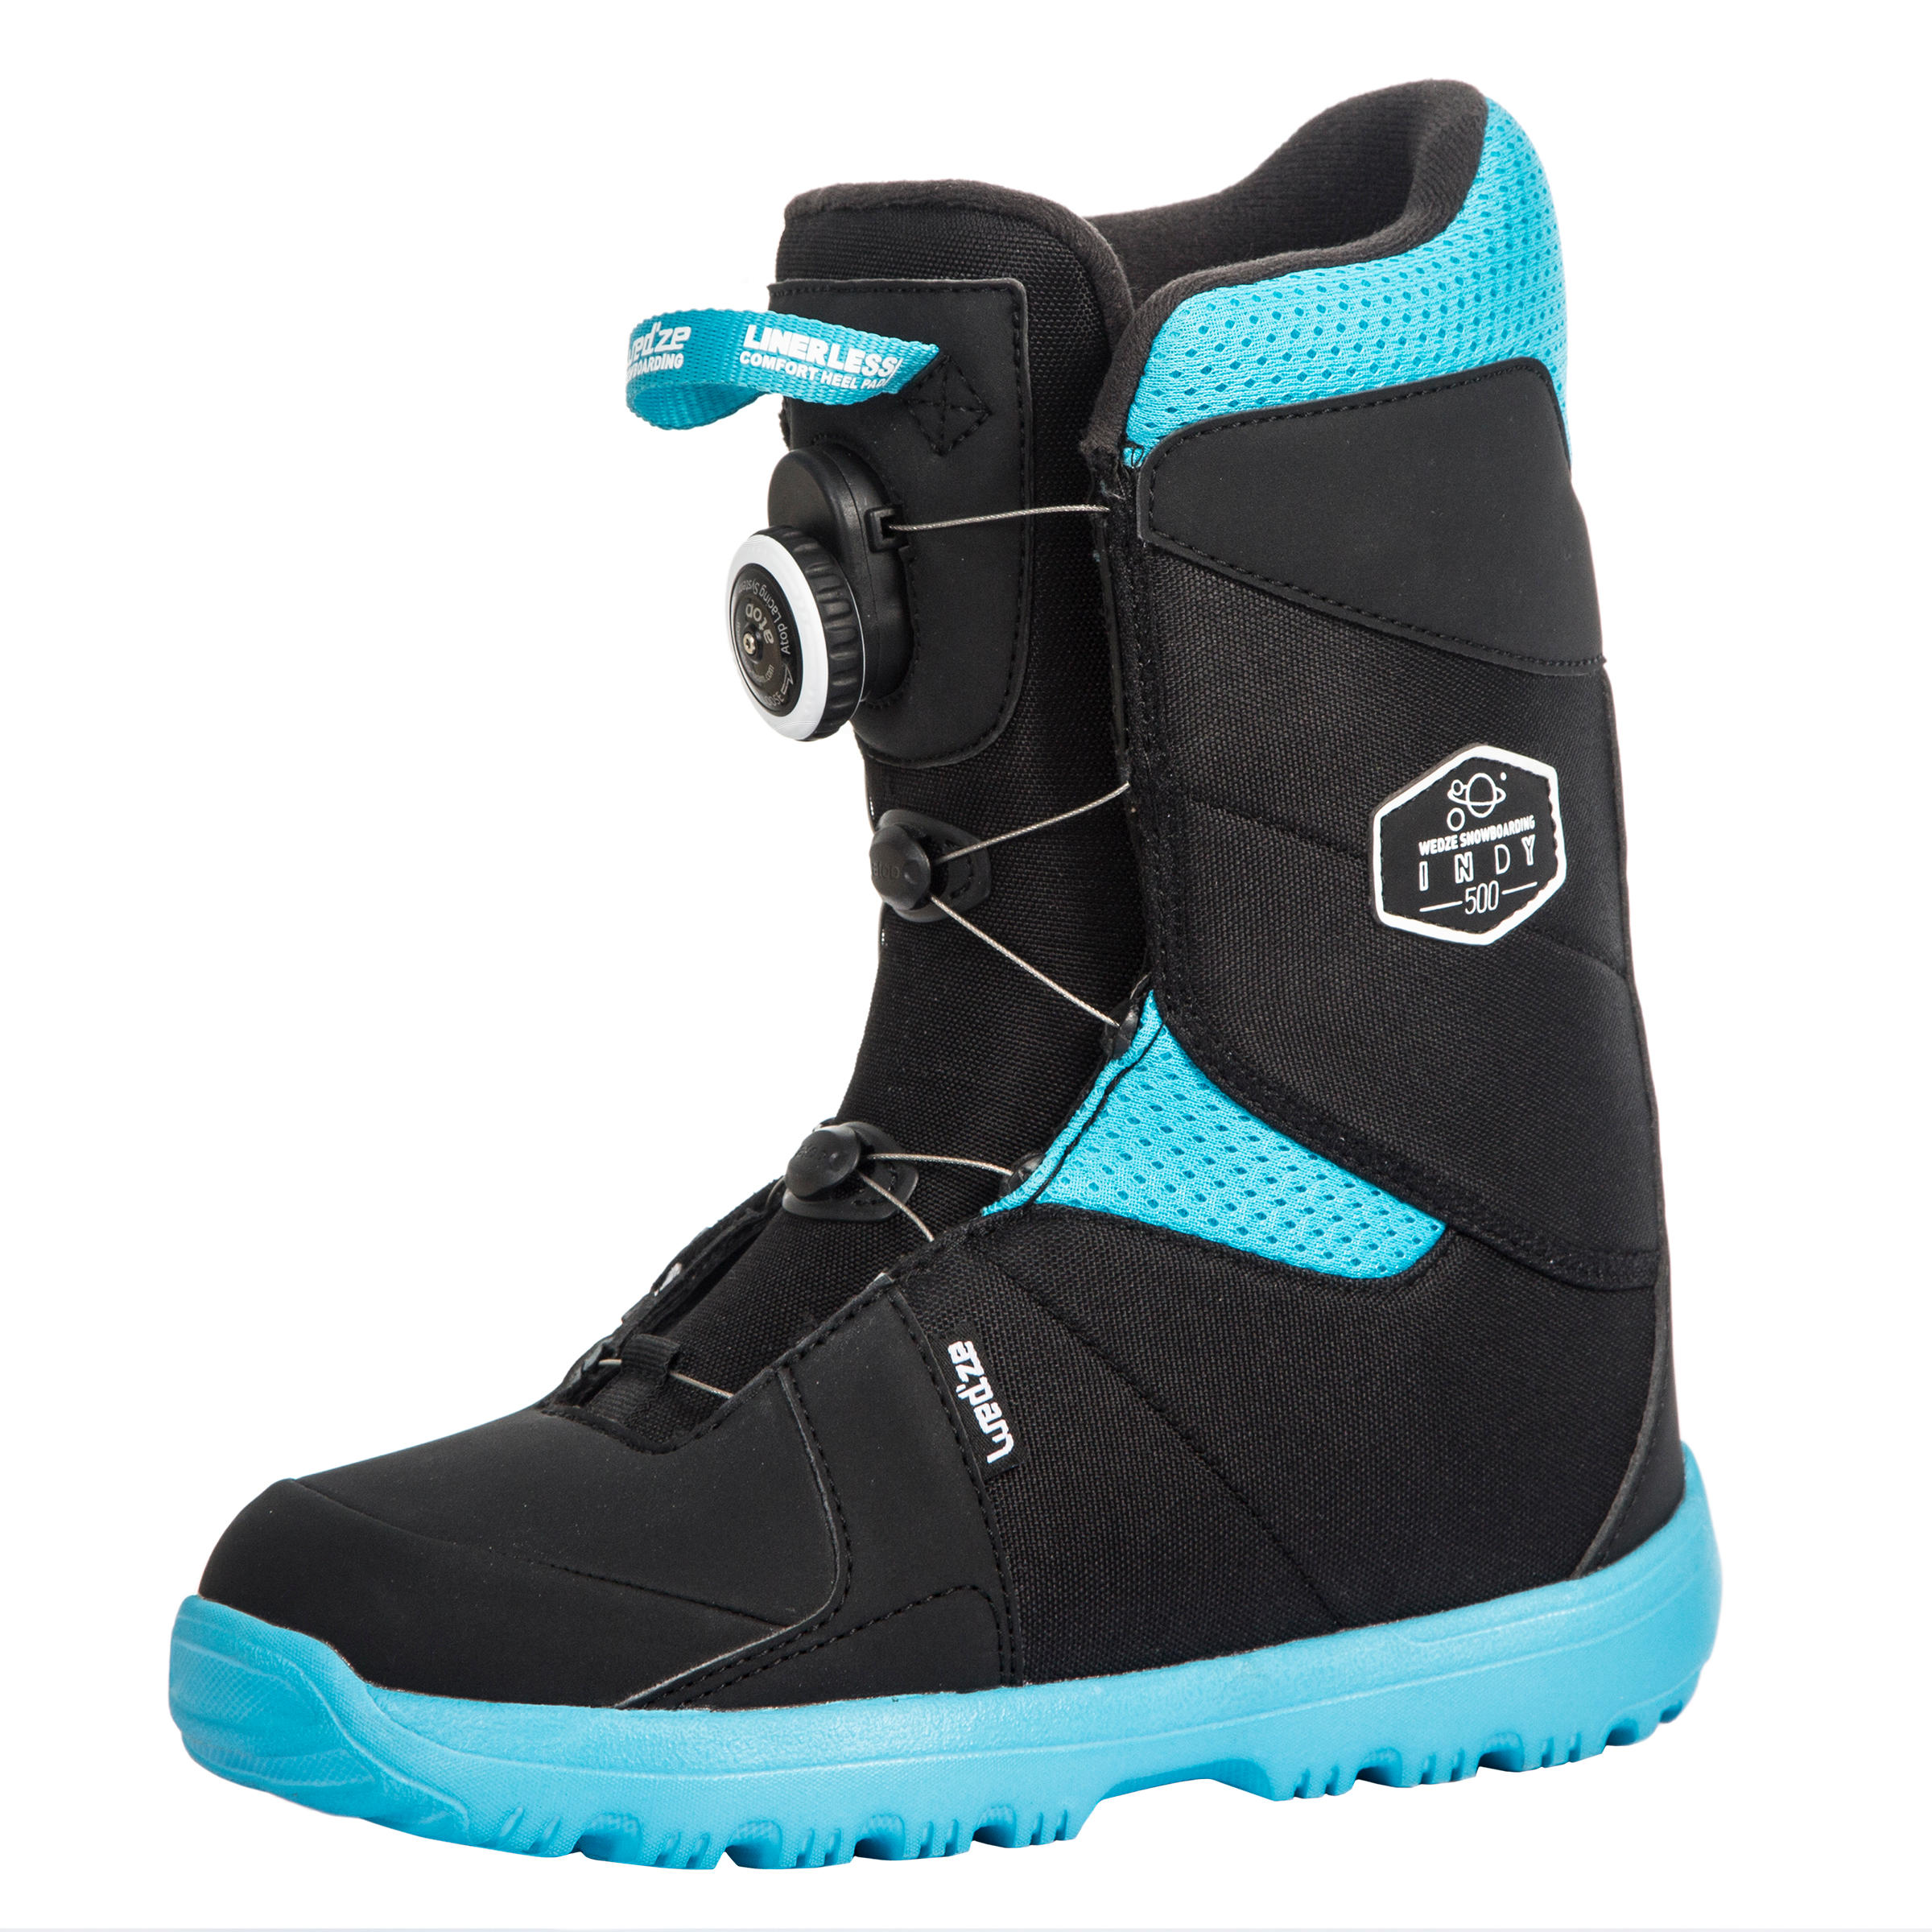 Boots Snowboard INDY 500 imagine